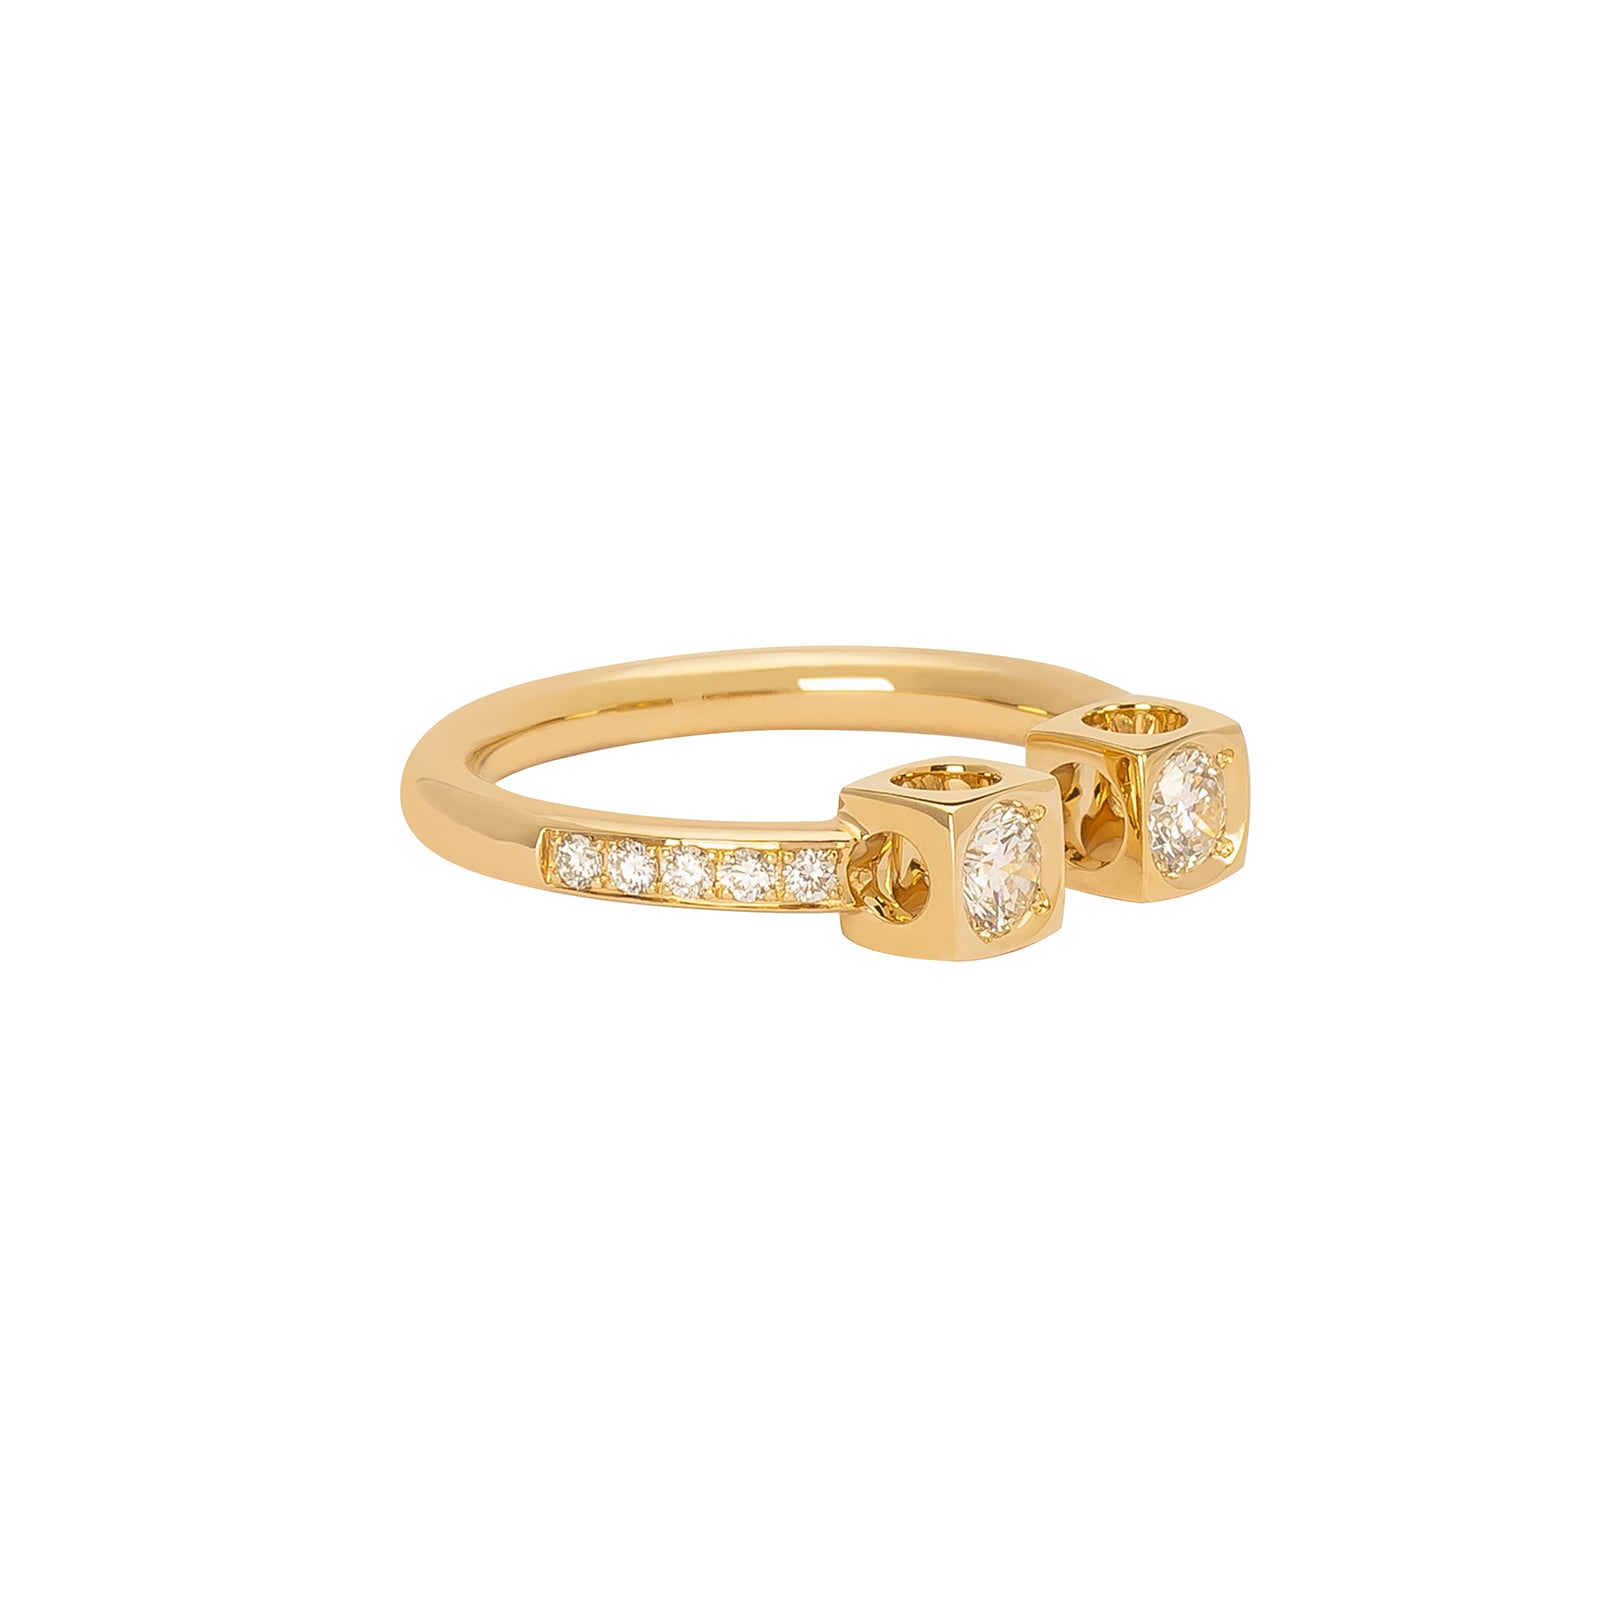 Dinh Van Le Cube Diamant Large Ring - Yellow Gold - Rings - Broken English Jewelry